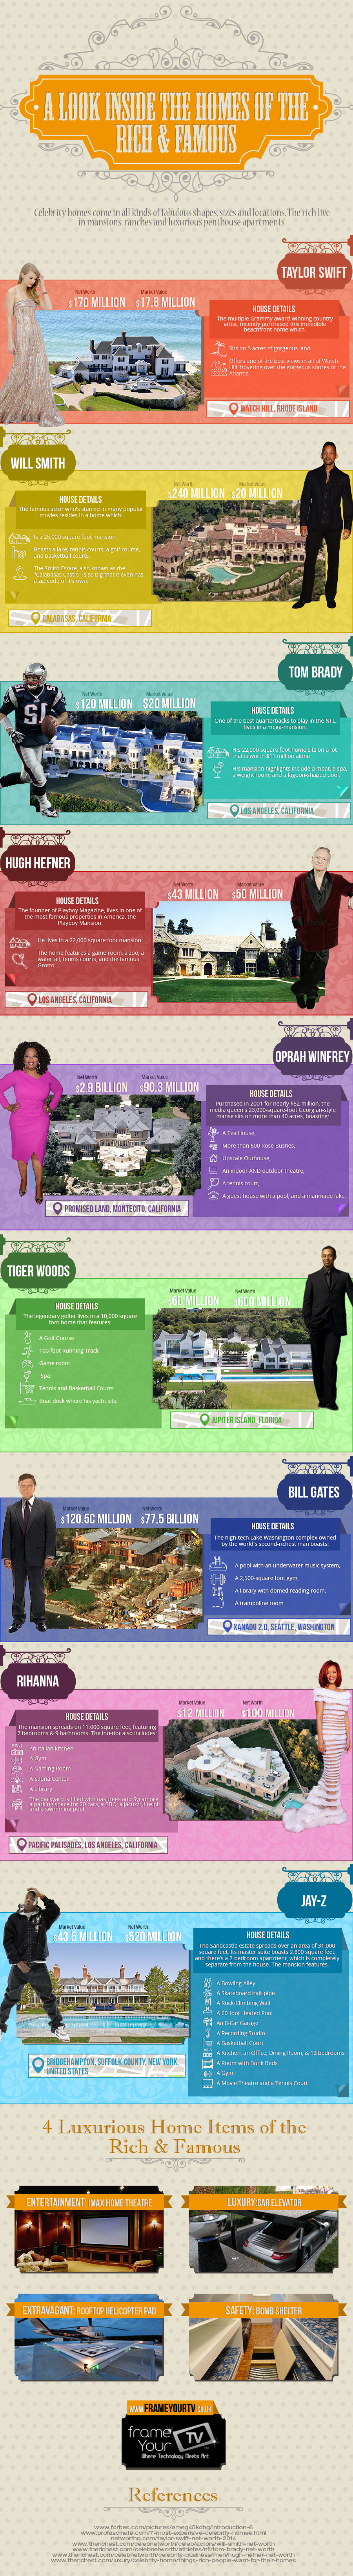 A Look Inside the Homes of the Rich and Famous